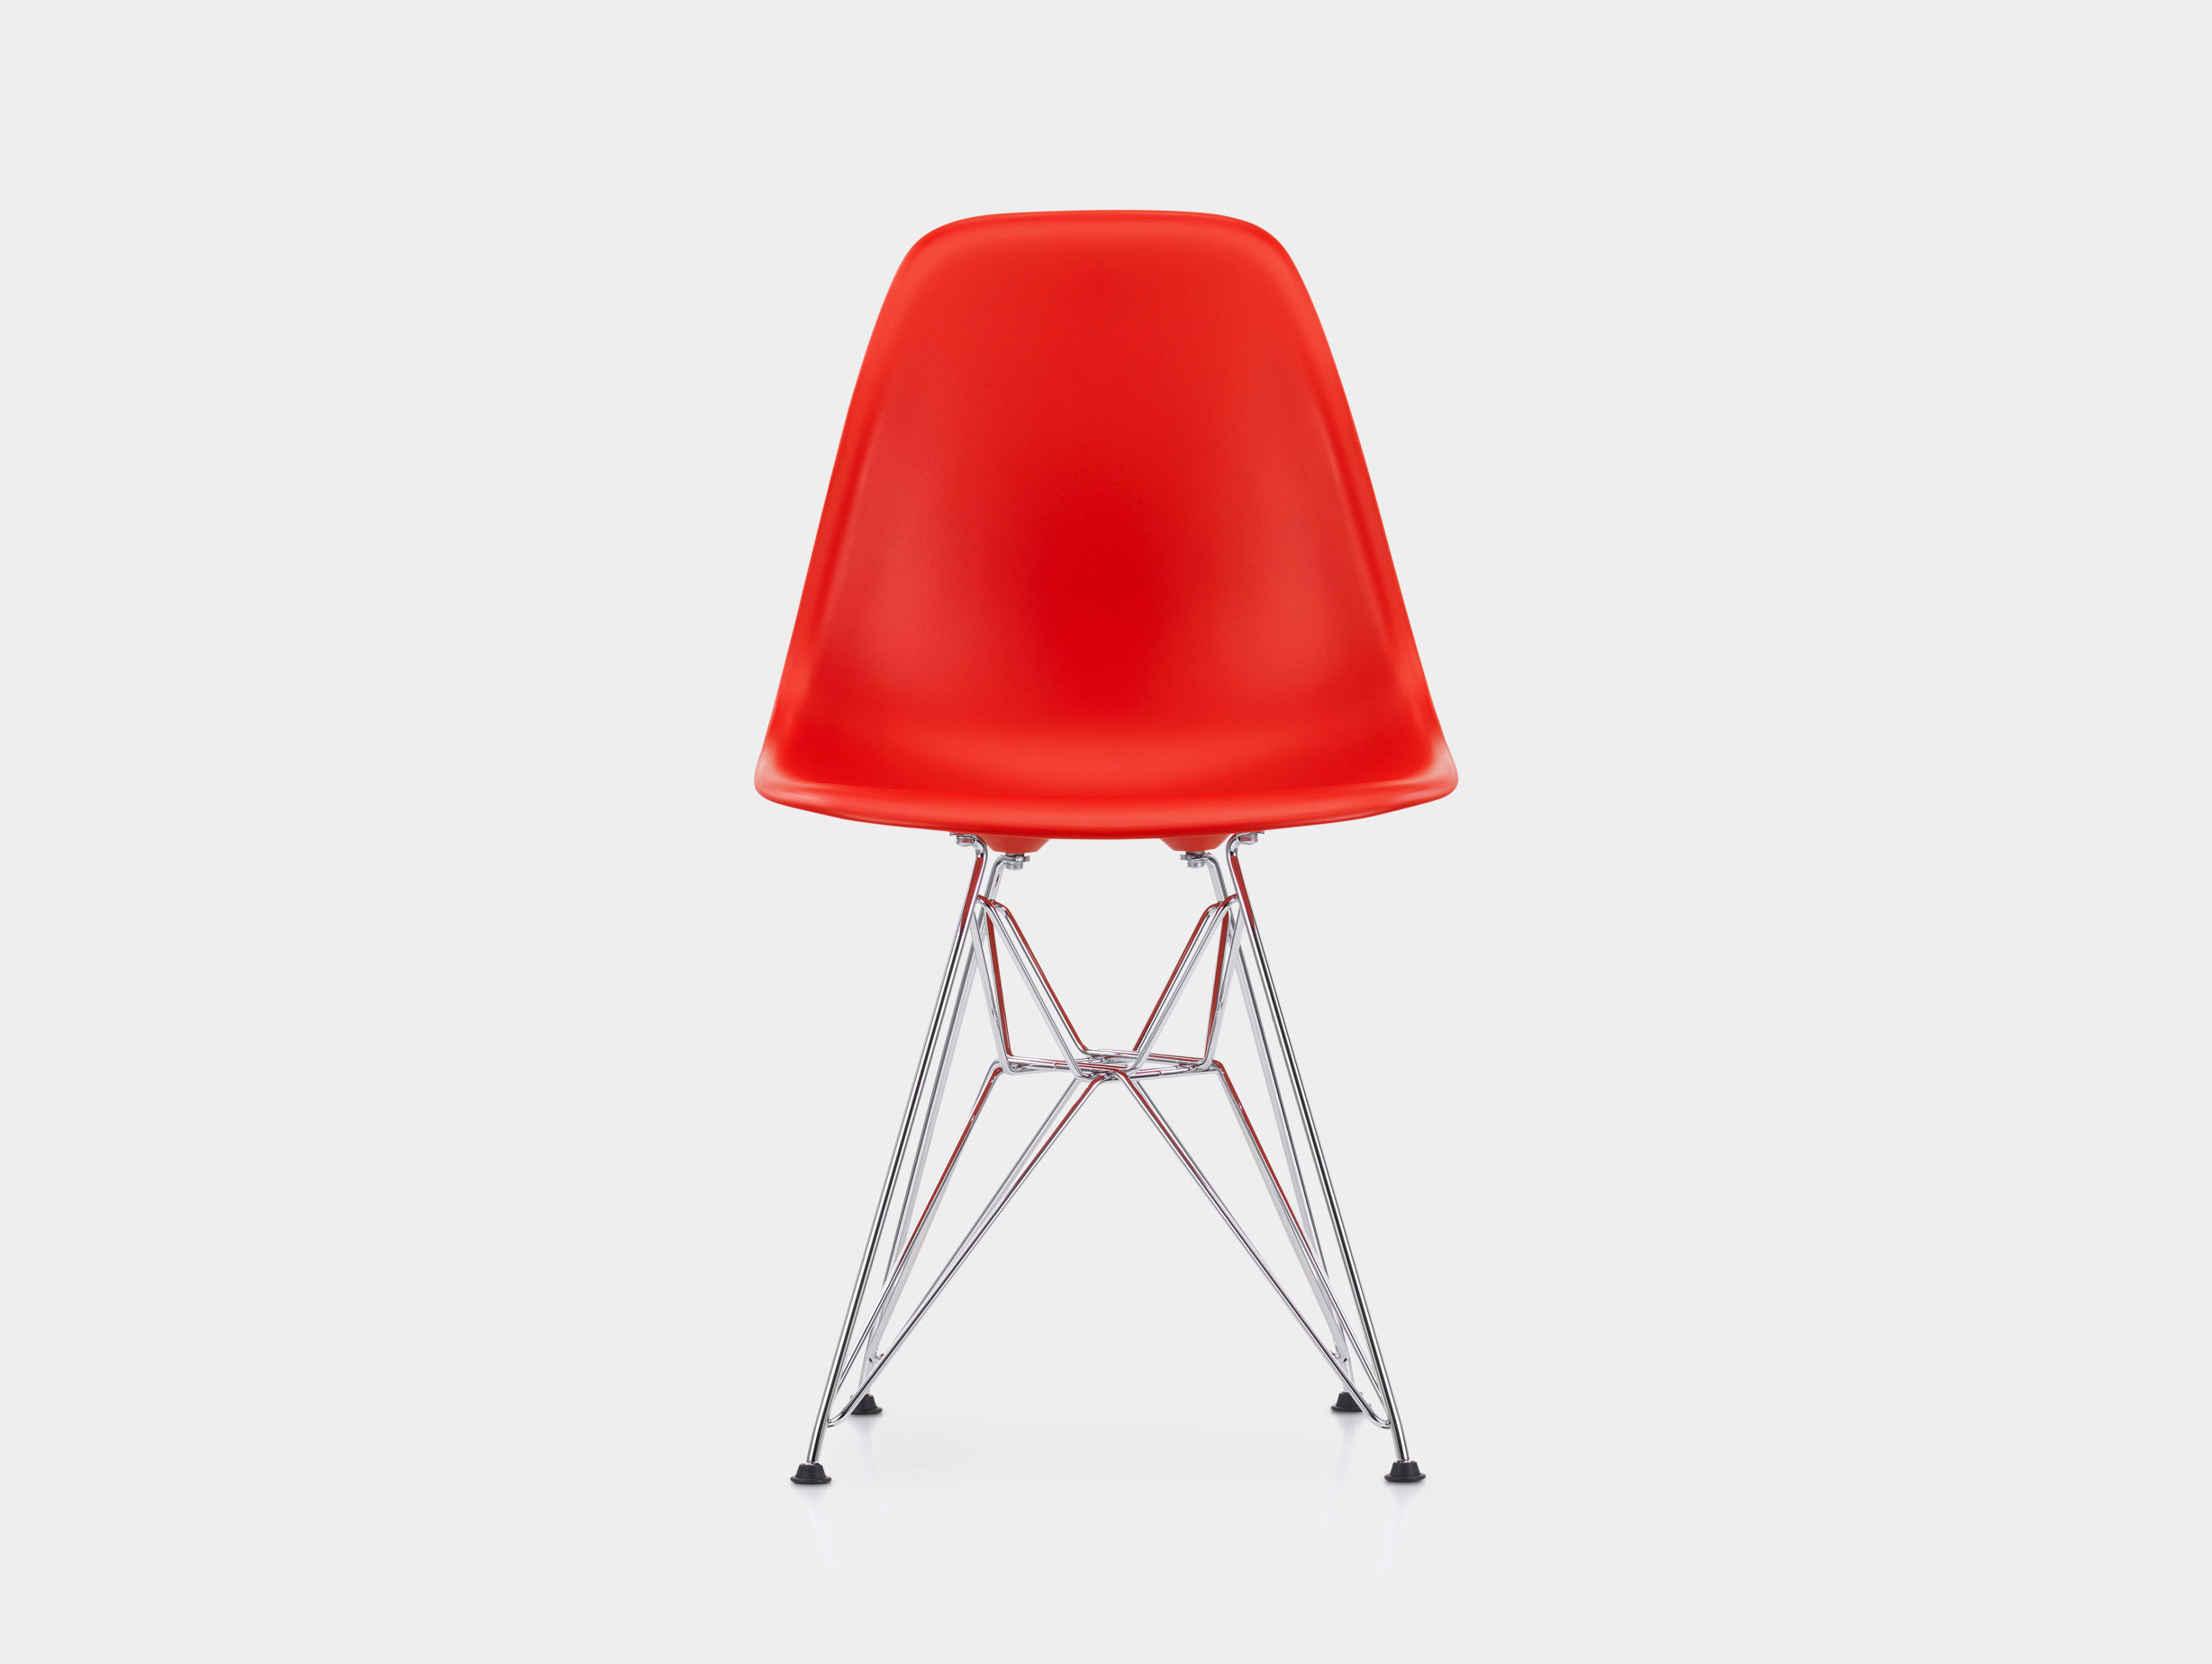 Eames DSR Plastic Side Chair image 6